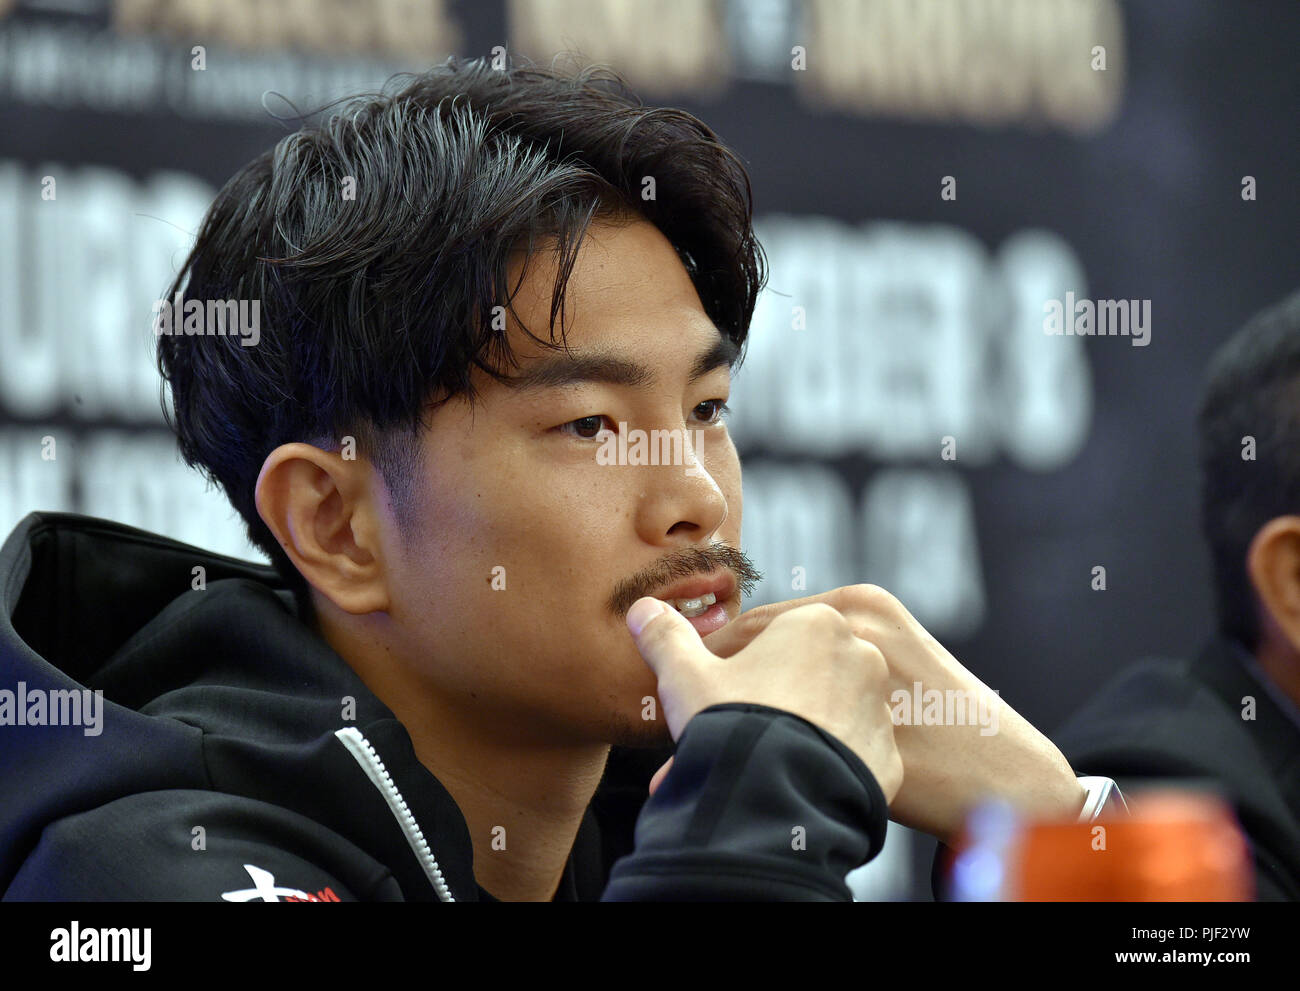 Los Angeles, California, USA. 6th Sep, 2018. Kazuto Ioka (JPN) Boxing : Kazuto Ioka of Japan attends a press conference ahead of his 10R super flyweight bout of SUPERFLY 3 in Los Angeles, California, United States . Credit: AFLO/Alamy Live News Stock Photo